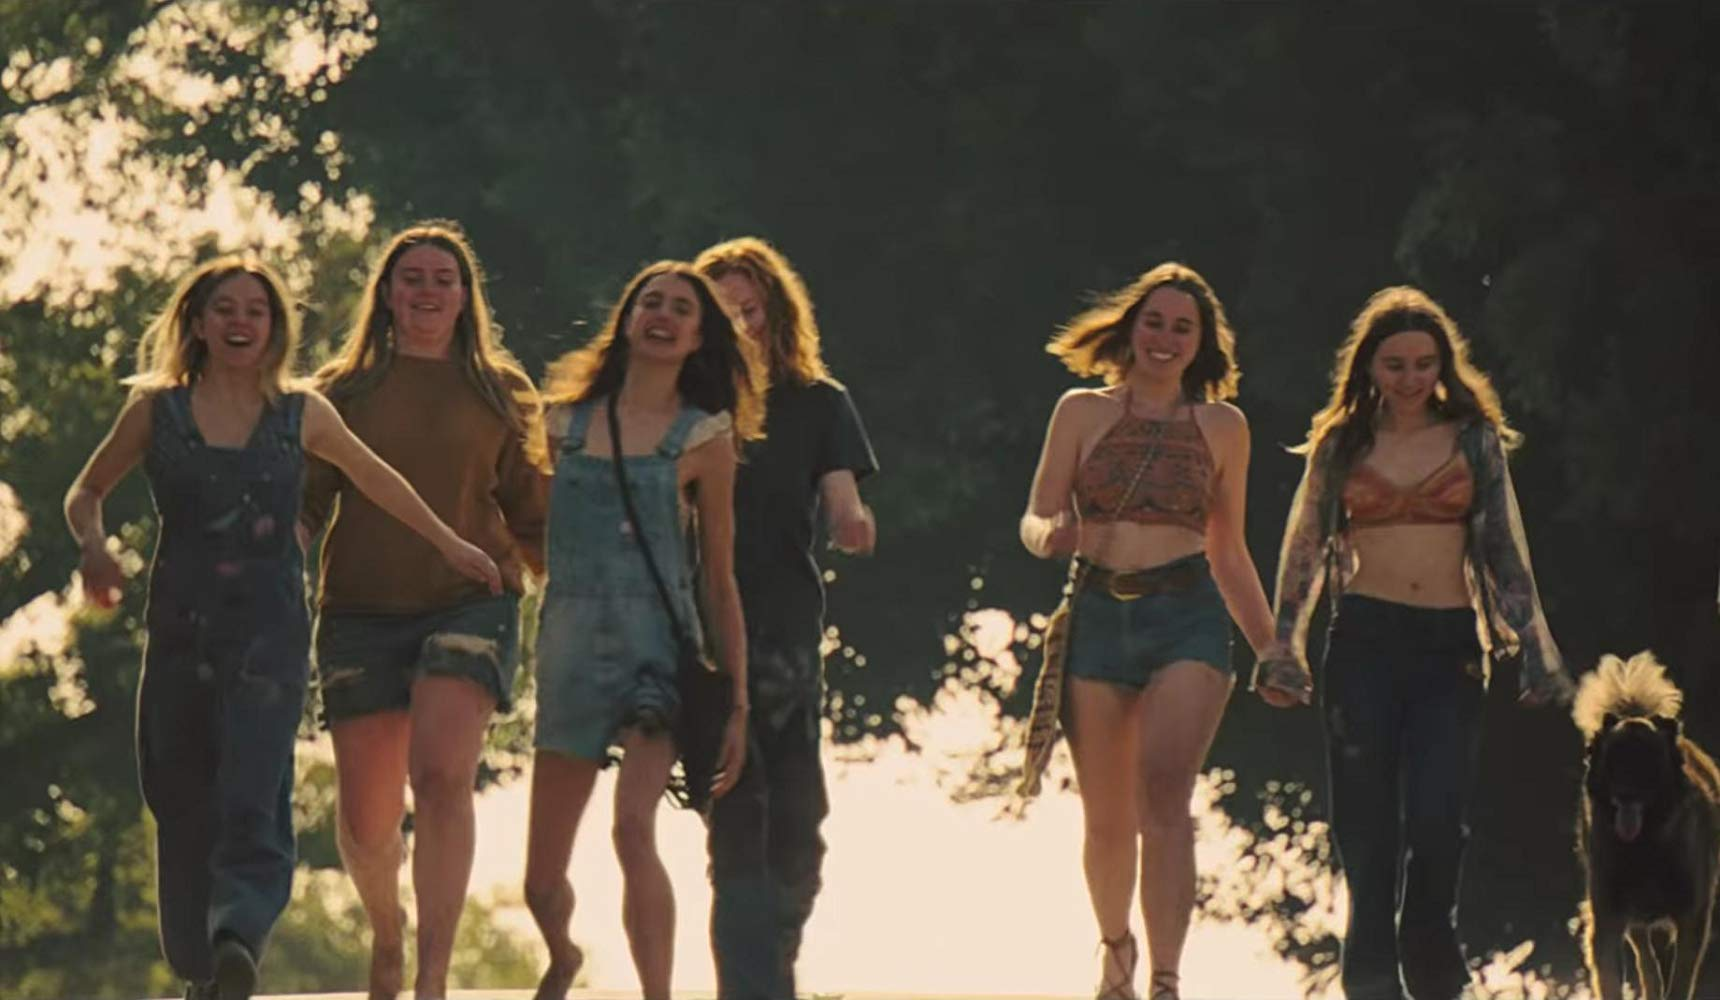 the girls of the manson family walk laughing and smiling together